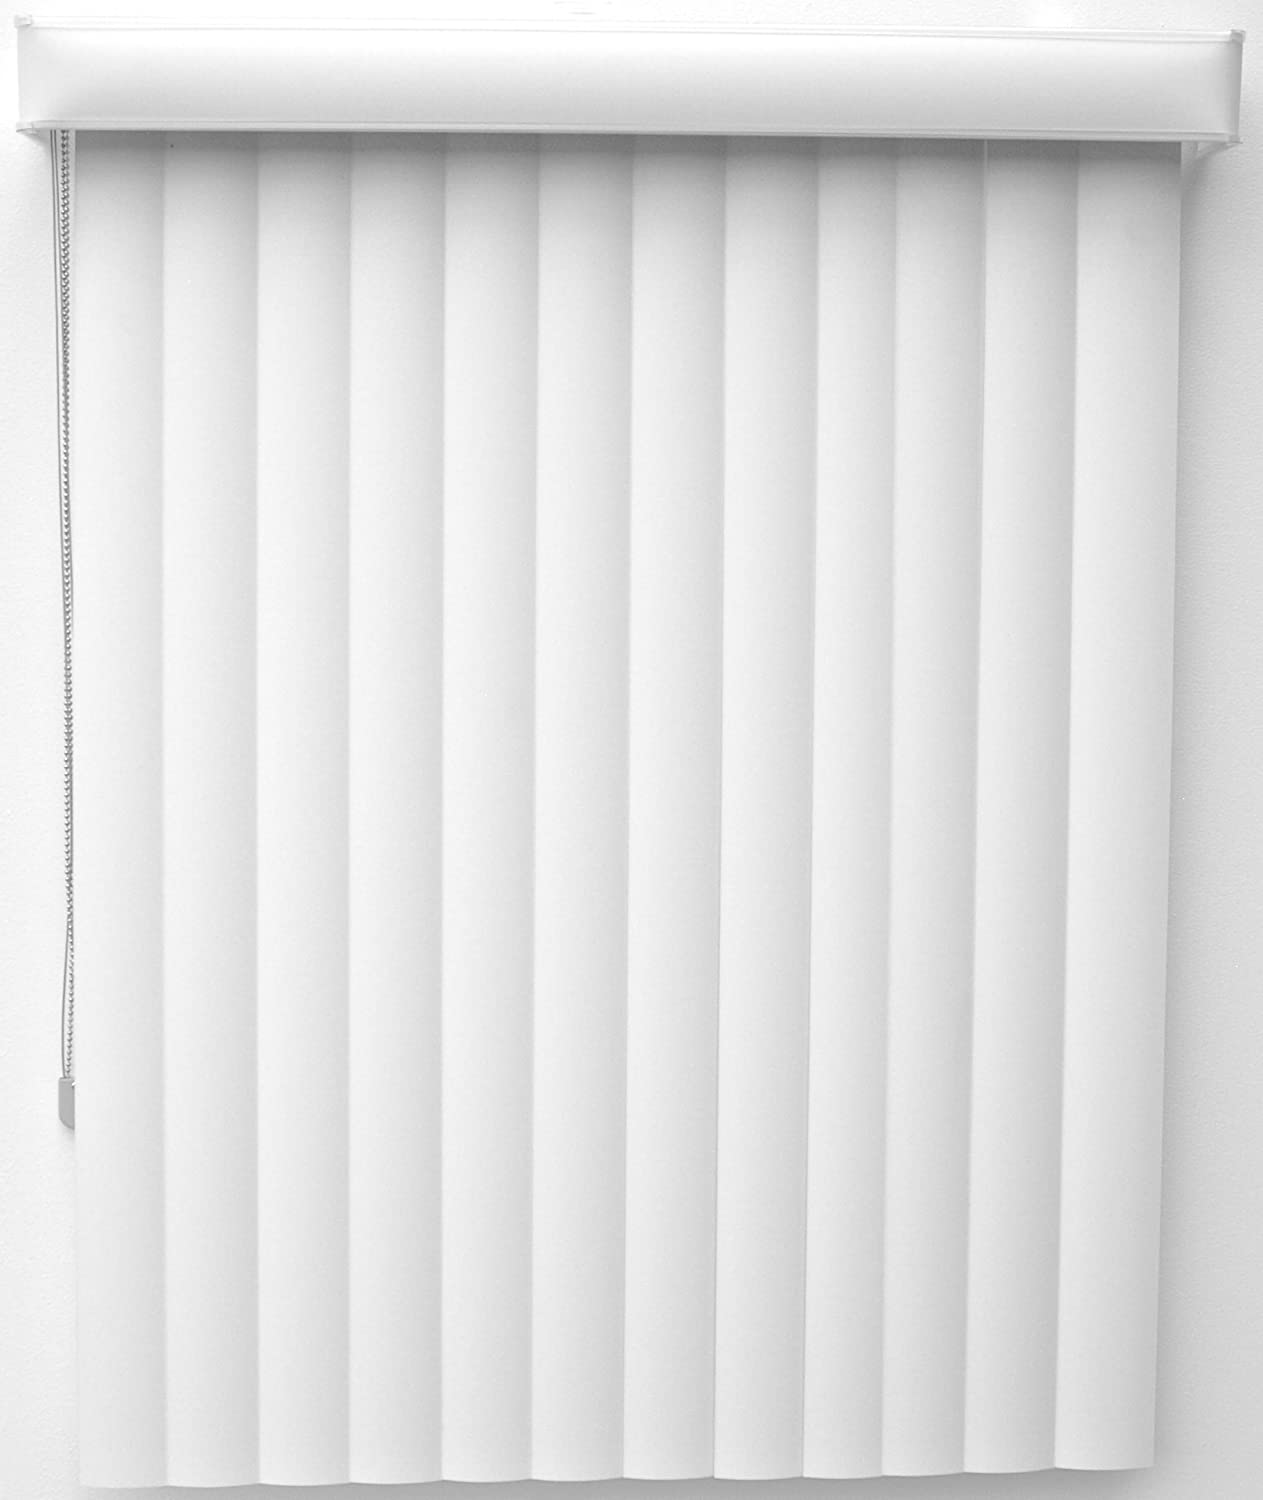 New Age Simplicity Collection Curved Soft Center Opening Vertical Blinds with Dust Cover Valance, Outside Mount, 17-1/4 by 37-1/4-Inch, White туалет new age pet products new age